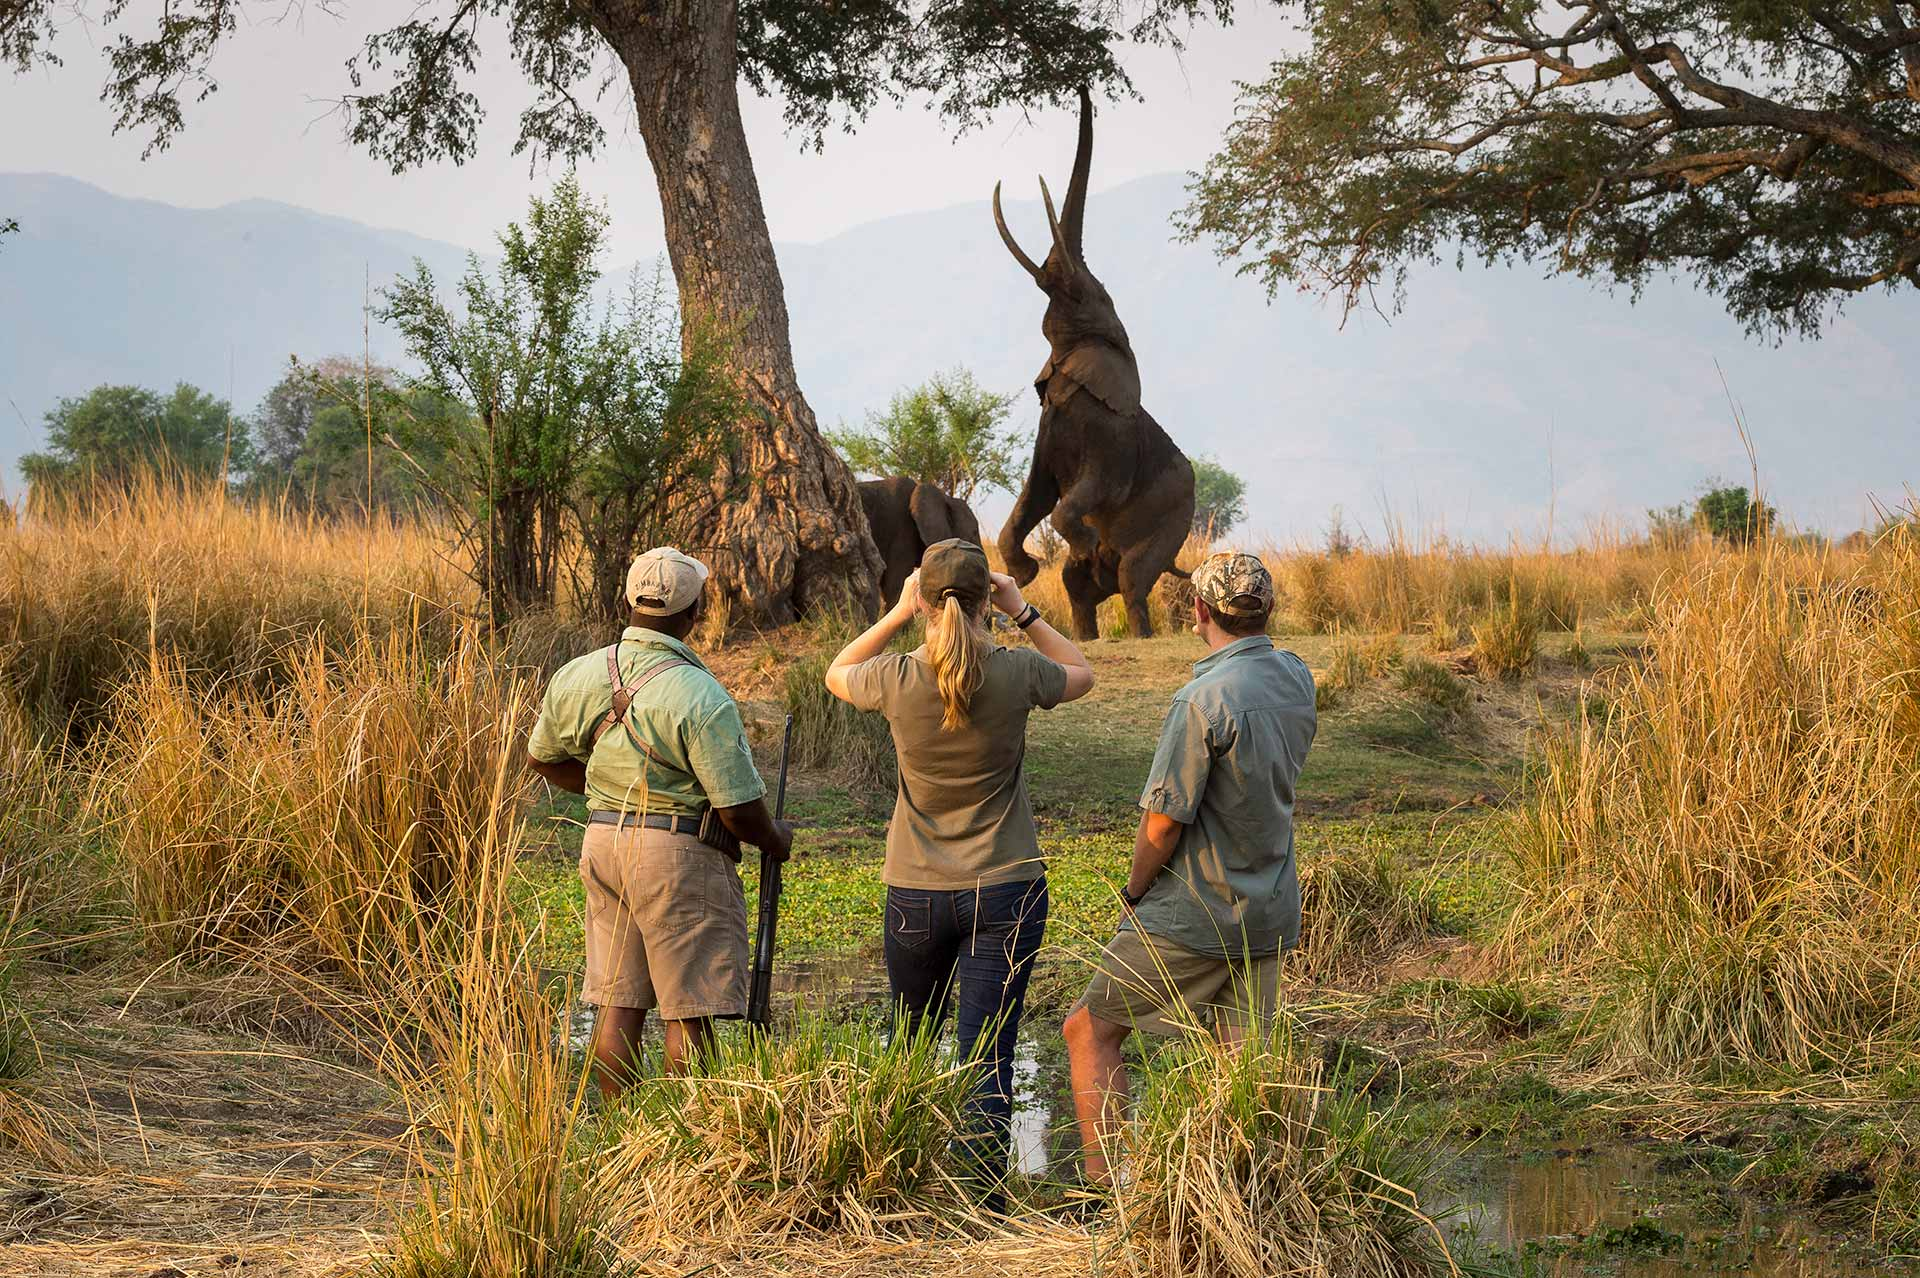 enkosi-africa-safari-zimbabwe-mana-pools-ruckomechi-camp-wilderness-game-walk-elephant